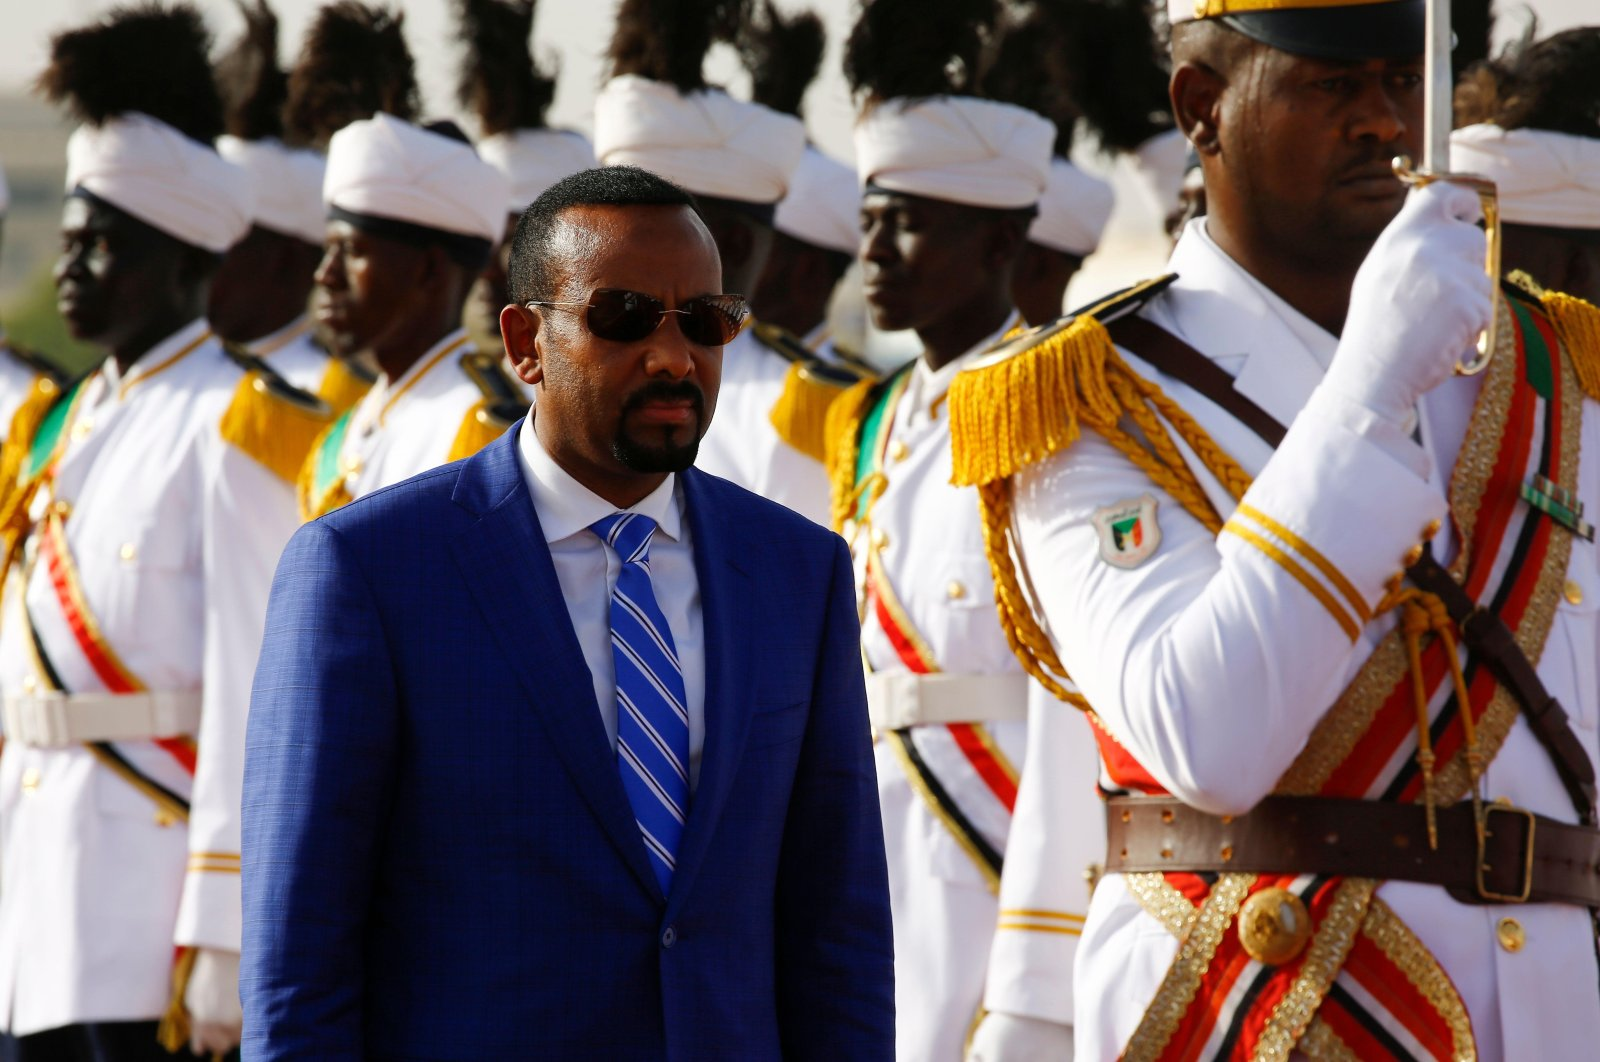 Ethiopian Prime Minister Abiy Ahmed reviews the honor guard following his arrival for an official visit, in Khartoum, Sudan, May 2, 2018. (AFP Photo)